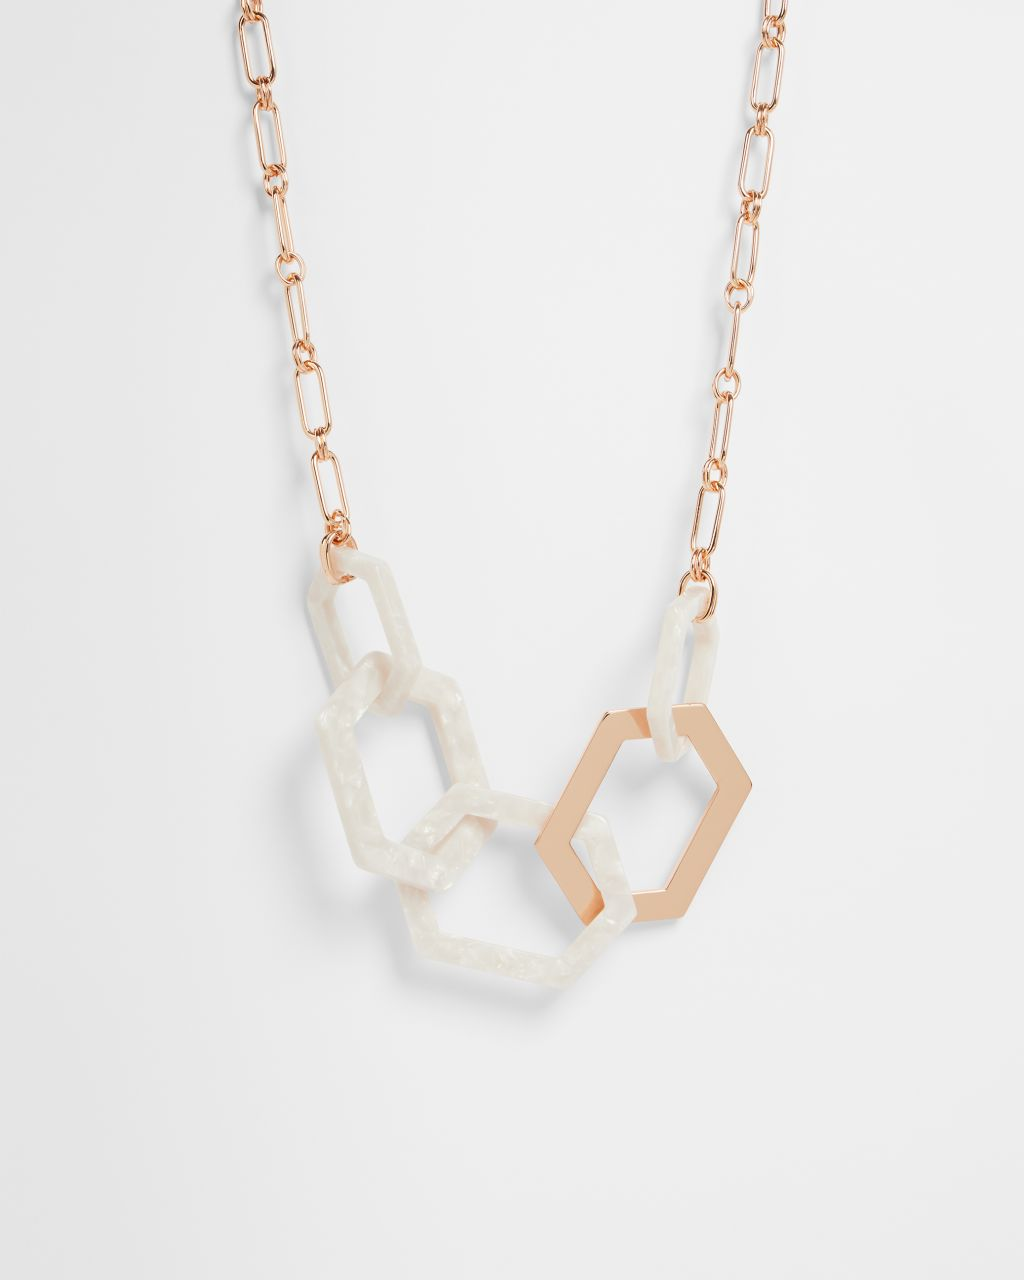 TED BAKER Geo Chain Necklace | TED BAKER SALE